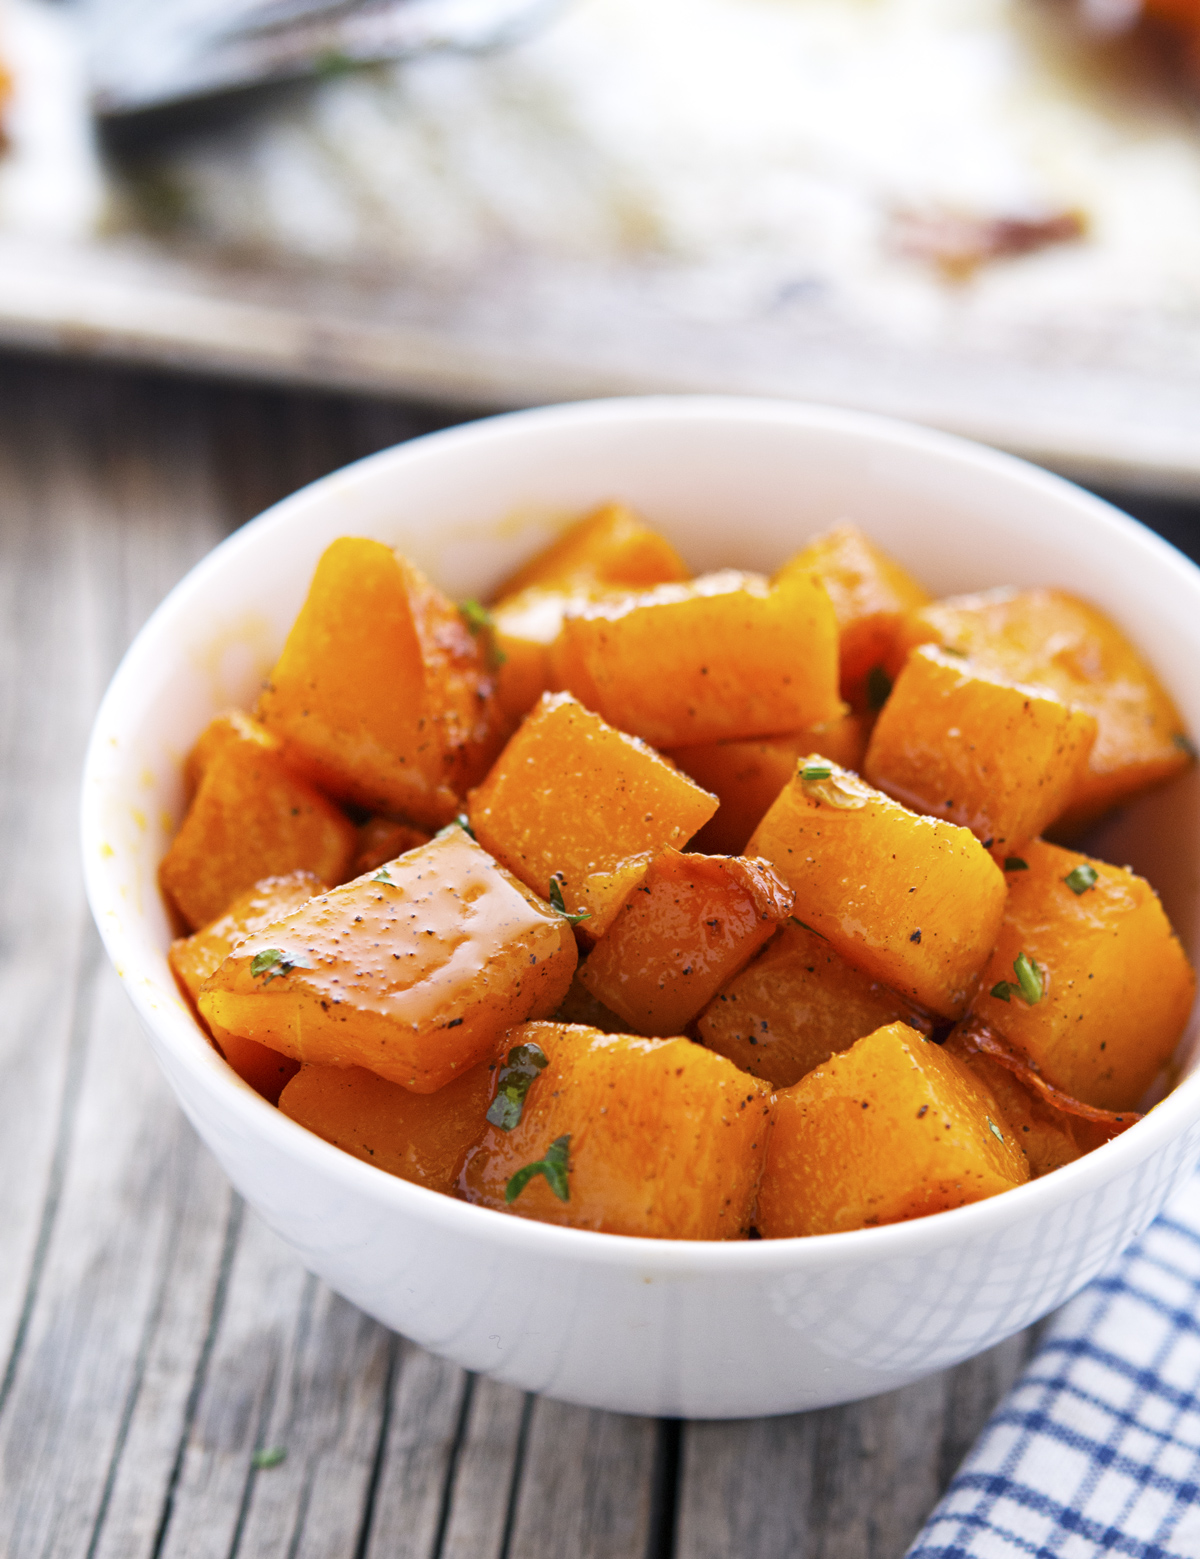 Spicy Maple-Glazed Butternut Squash